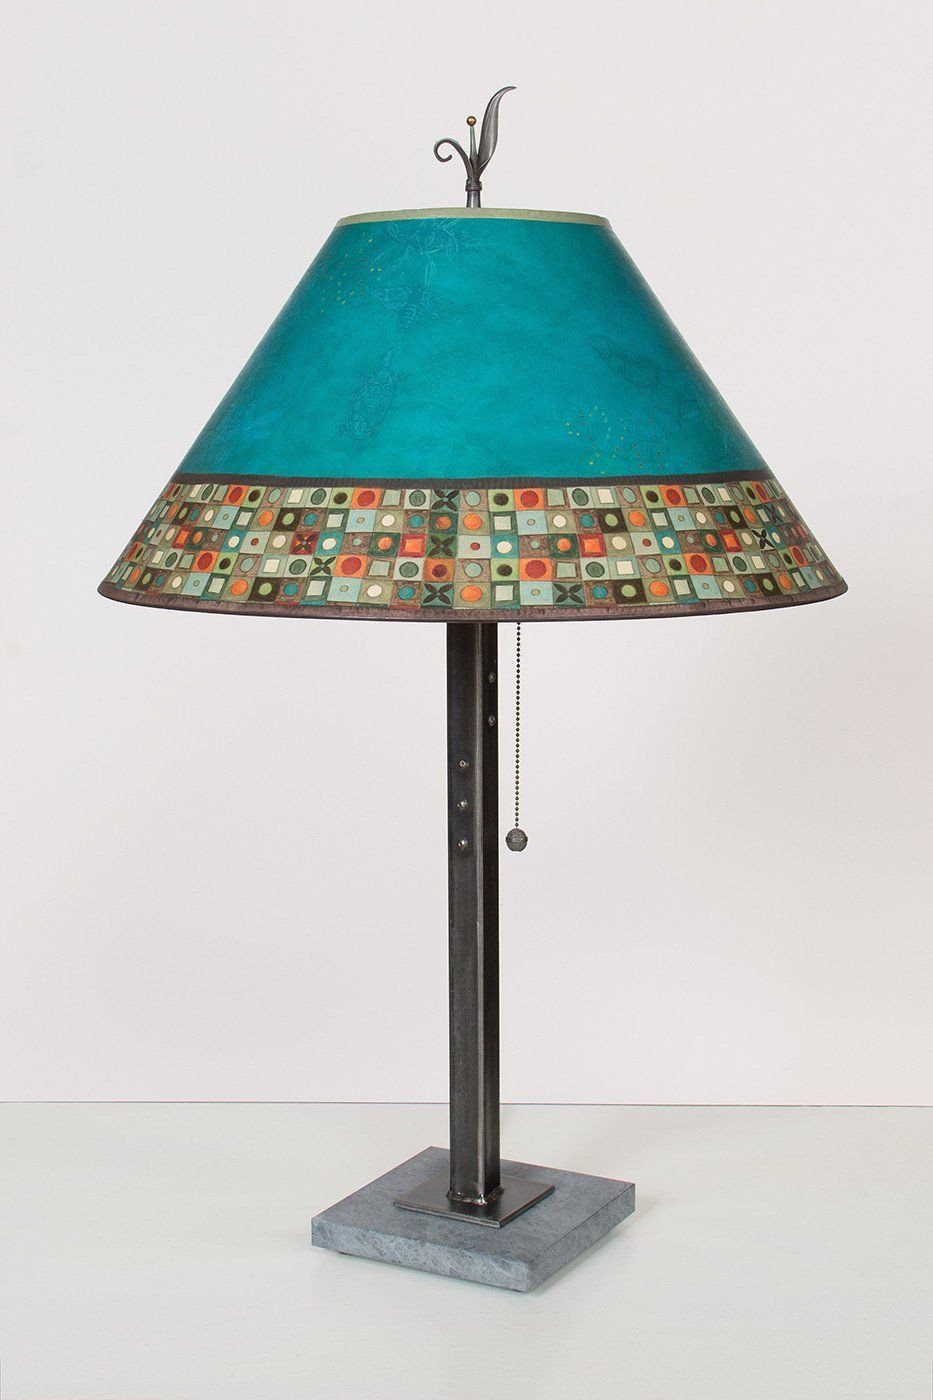 Steel Table Lamp on Italian Marble with Large Conical Shade in Jade Mosaic